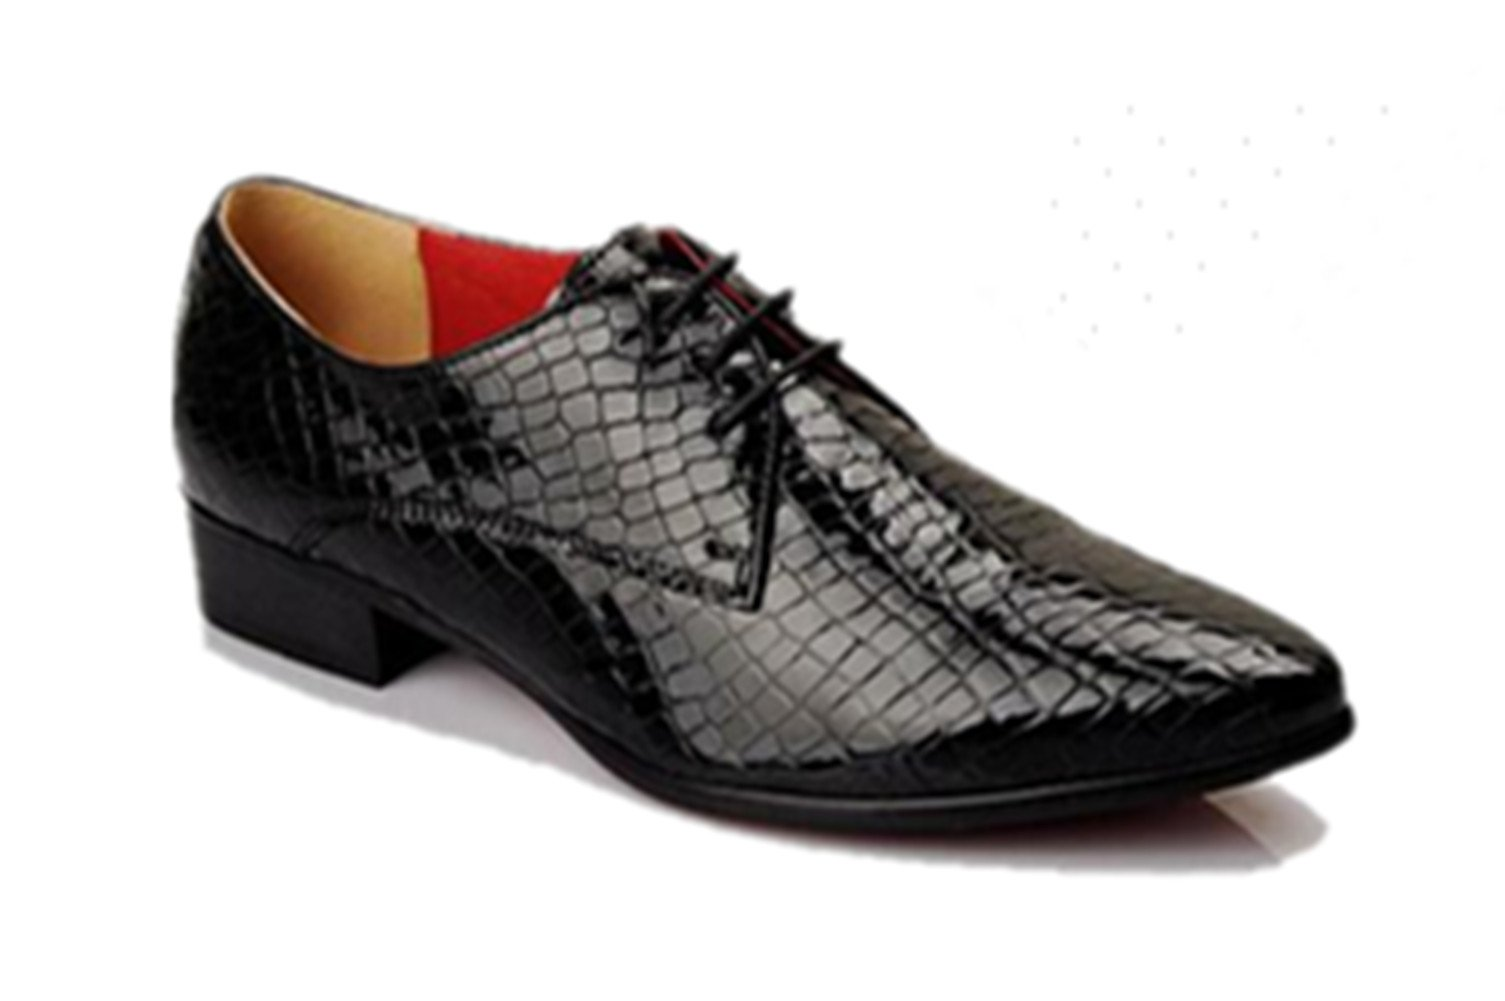 HAPPYSHOP(TM Mens British Style Pint-Tipped Leather Business Shoes Lace-up Winklepickers (M 38 EU, Black) by HAPPYSHOP